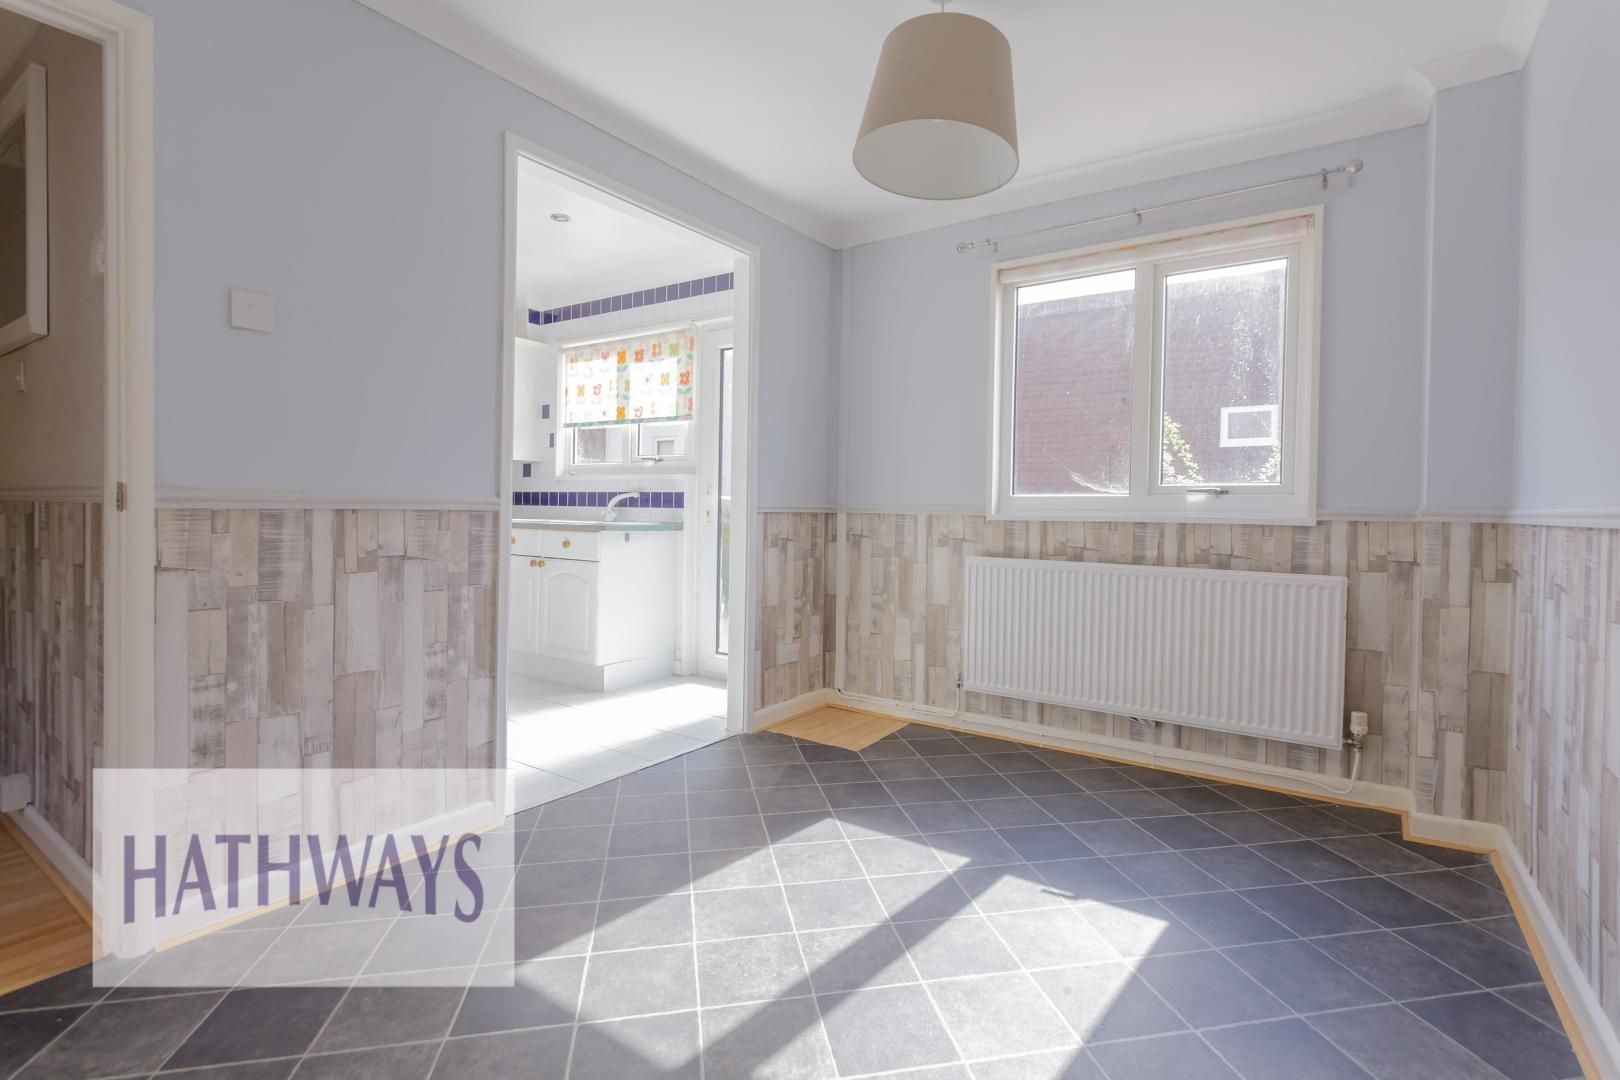 3 bed house for sale in Oaksford  - Property Image 8